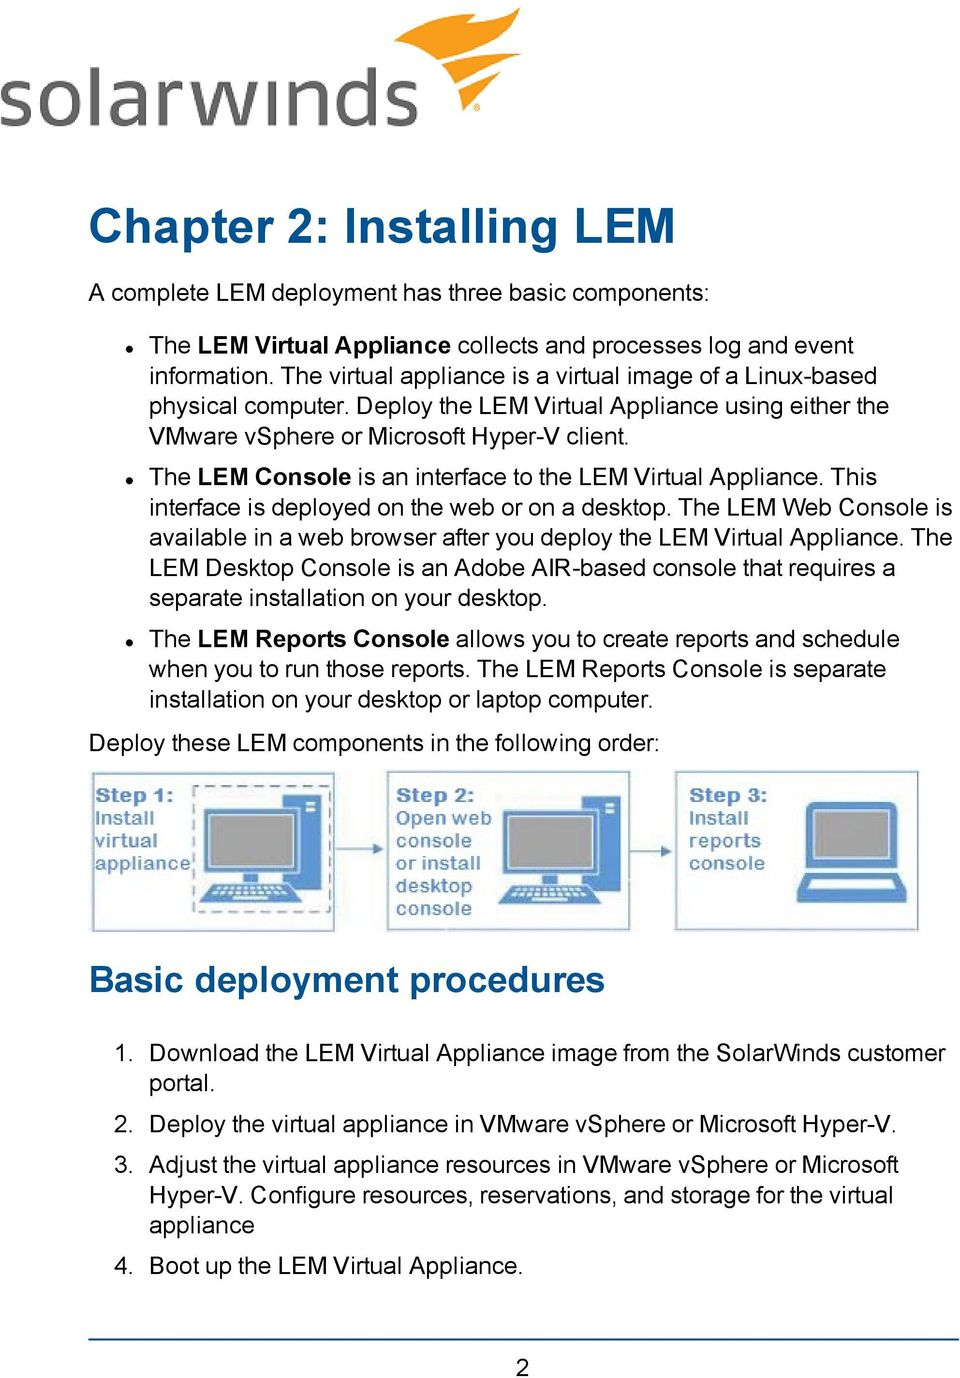 The LEM Console is an interface to the LEM Virtual Appliance. This interface is deployed on the web or on a desktop.